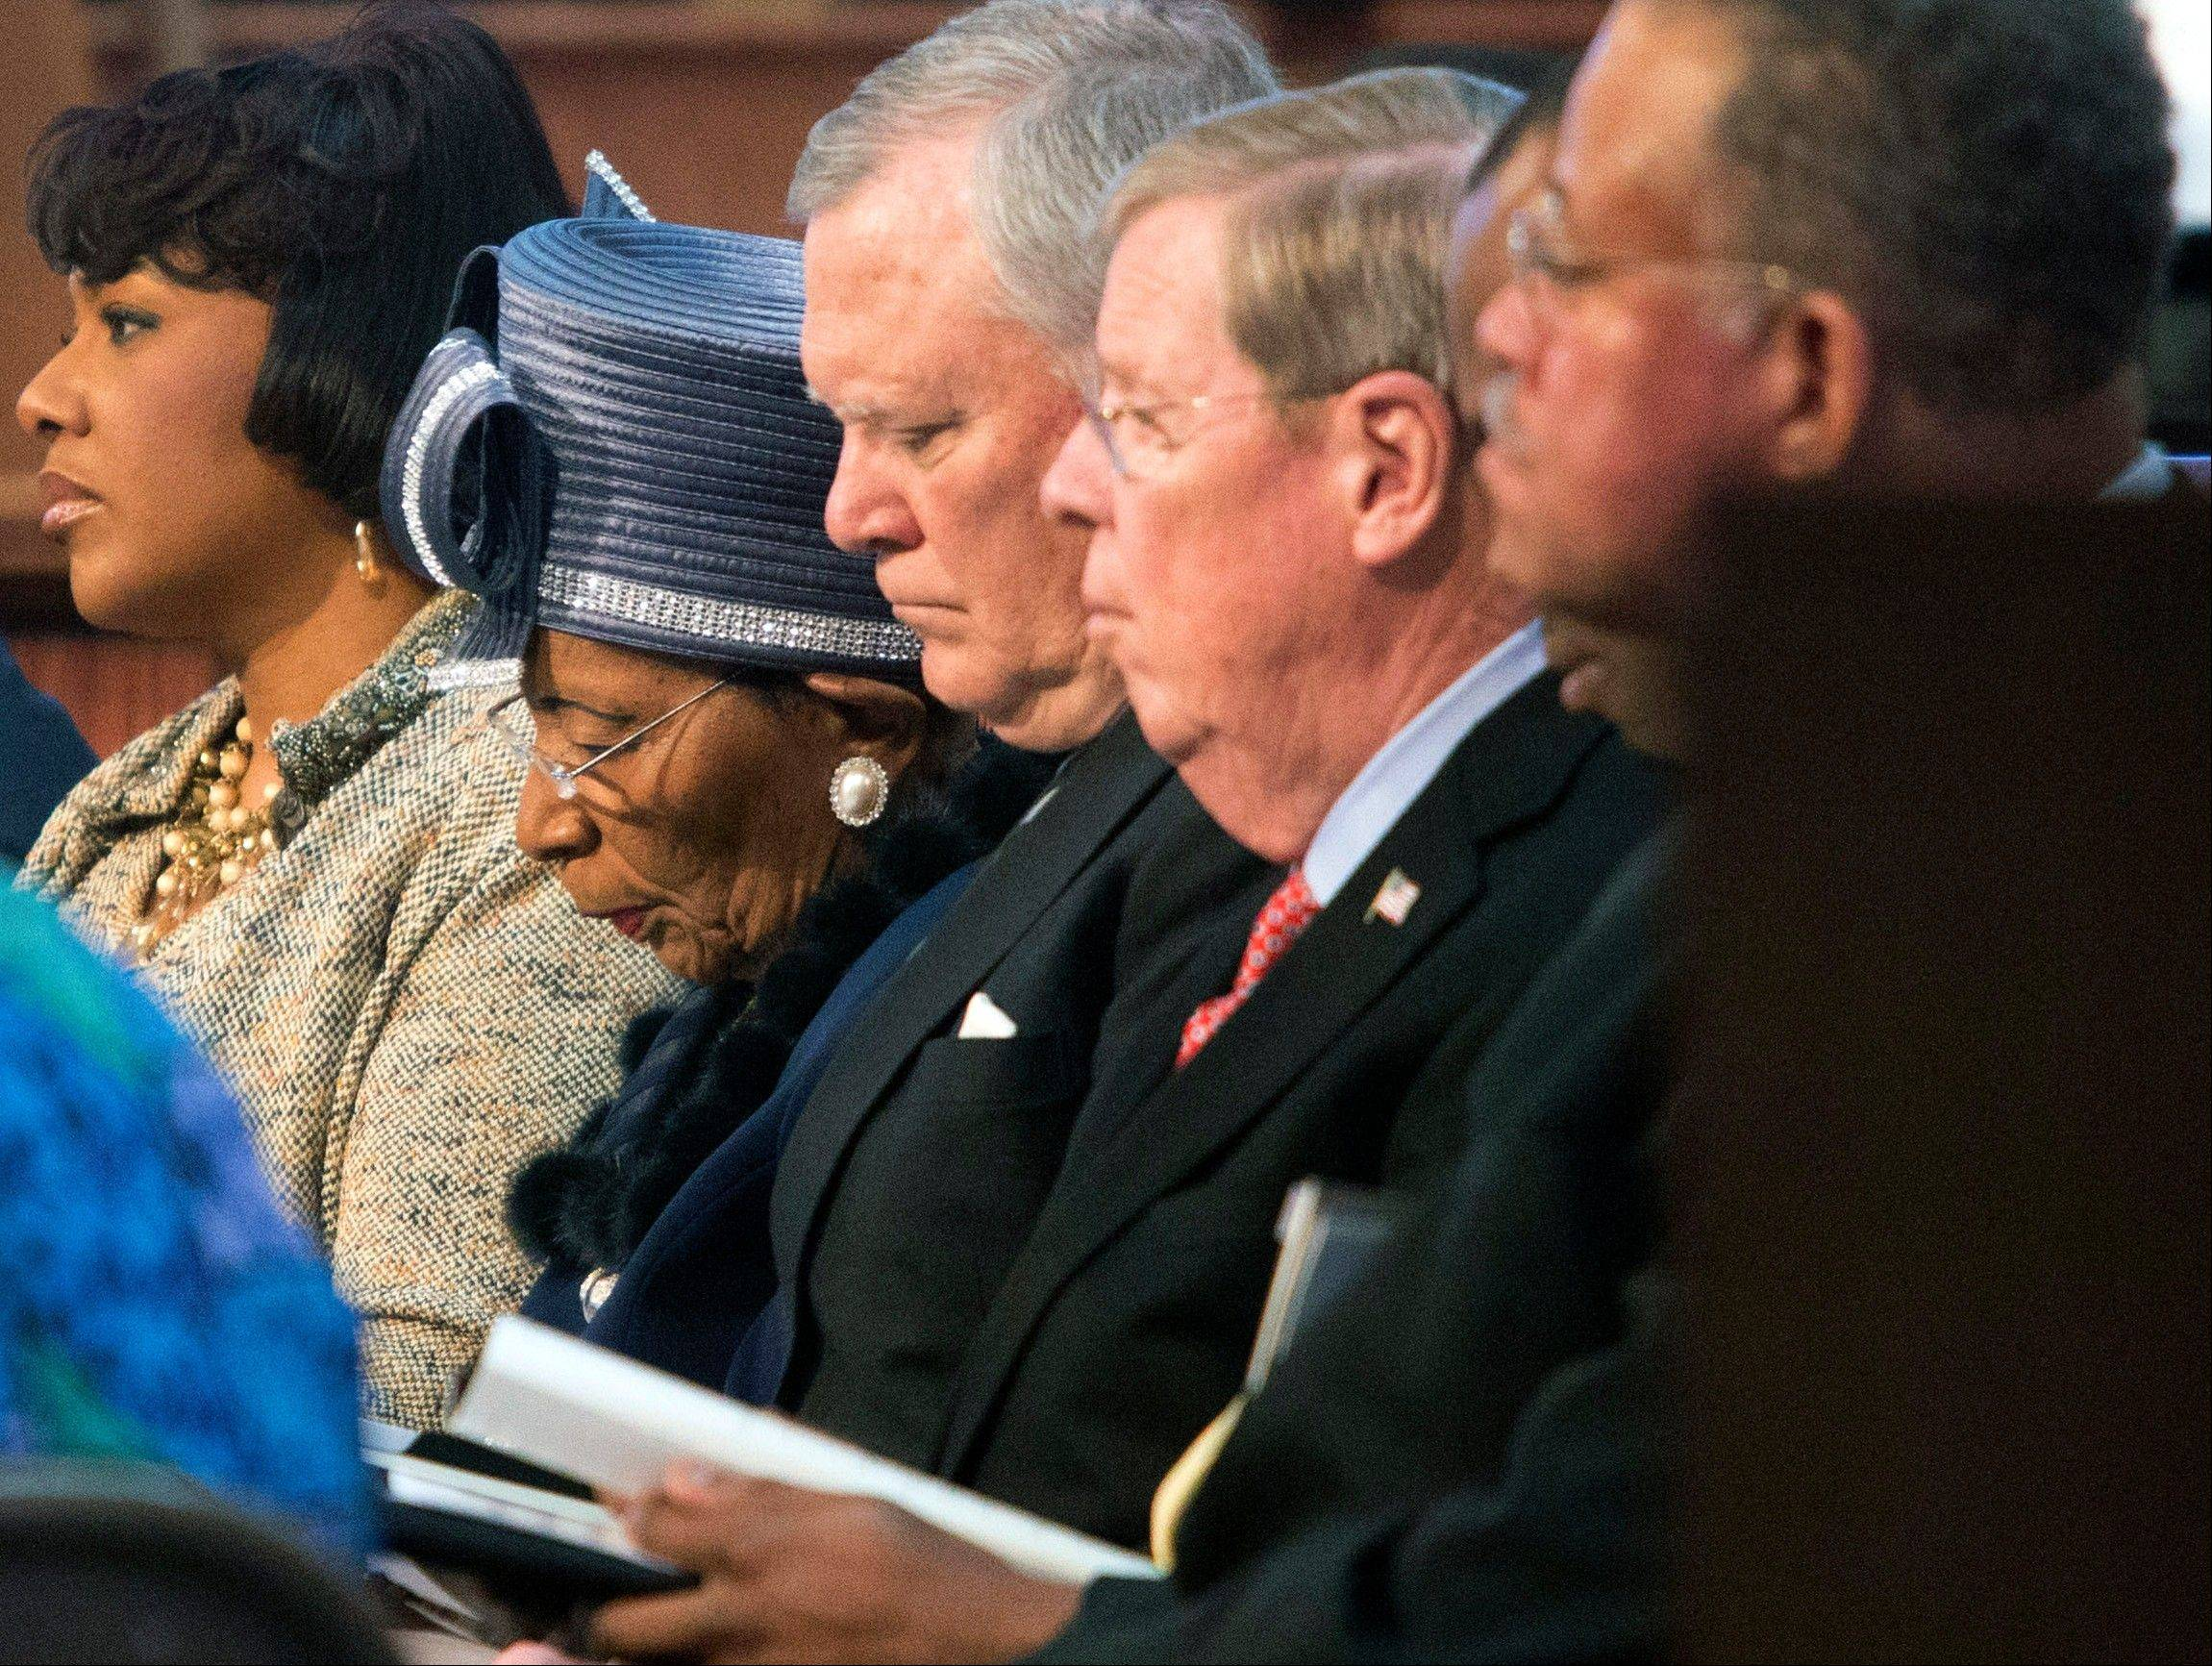 Bernice King, left, Christine King Farris, second from left, Gov. Nathan Deal, third from left, and U.S. Sen. Johnny Isakson, second from right, are shown before the Rev. Martin Luther King Jr. holiday commemorative service at Ebenezer Baptist Church Monday, Jan. 20, 2014, in Atlanta.